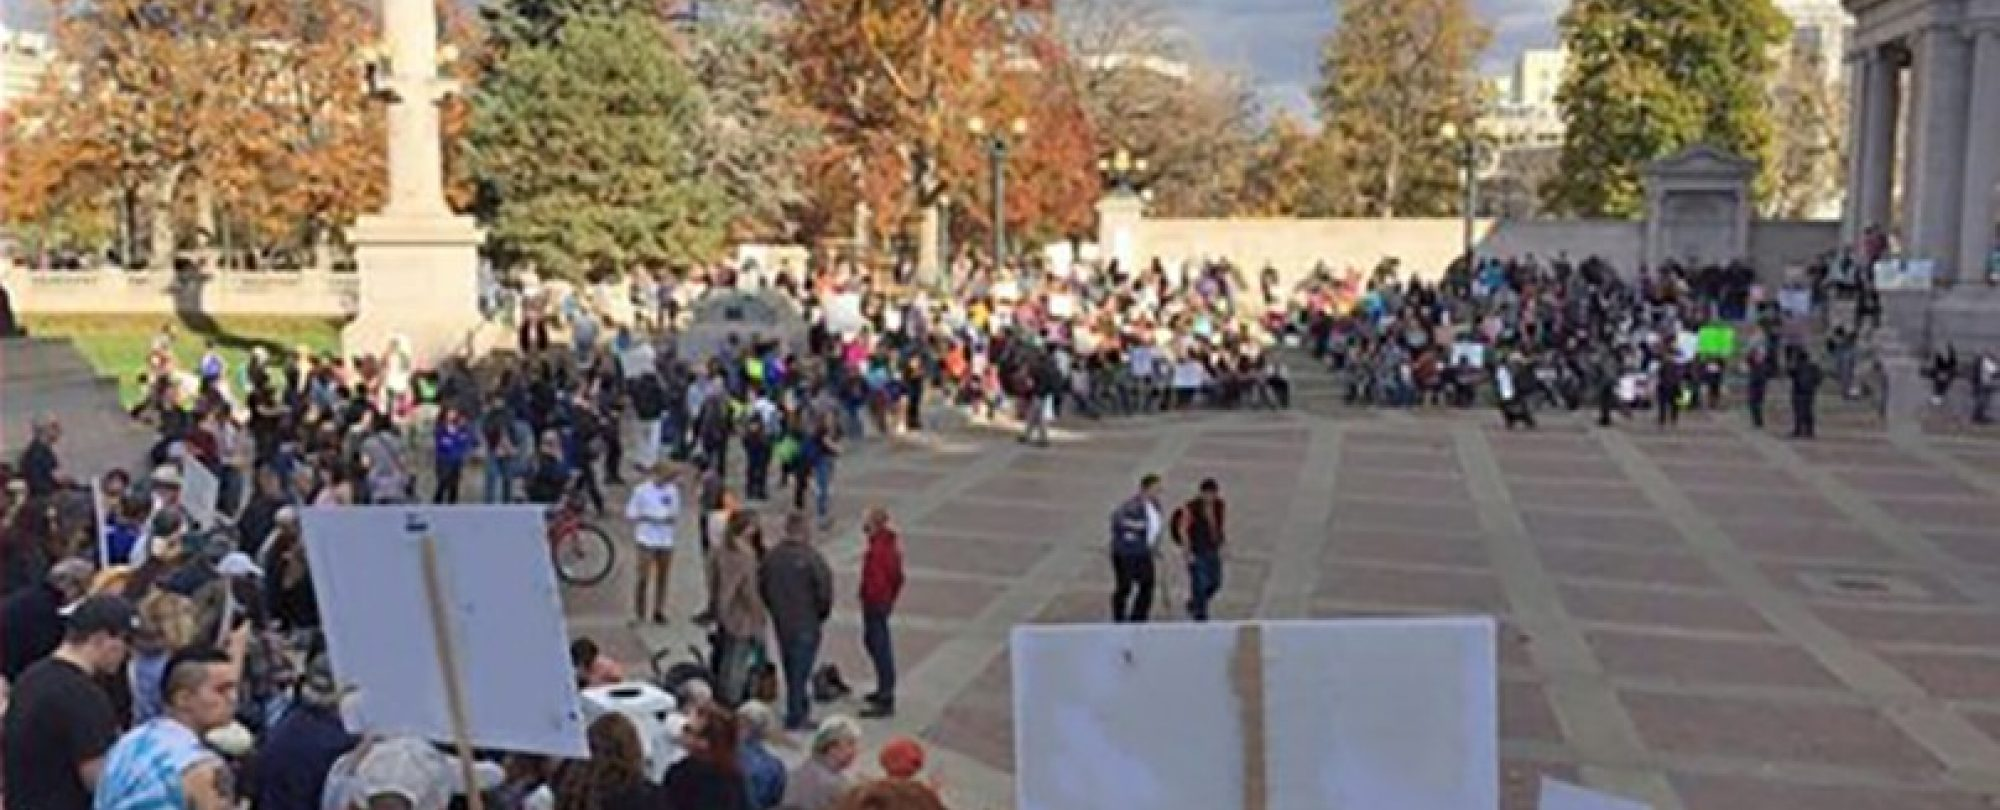 Image of many people gathering in civic center park